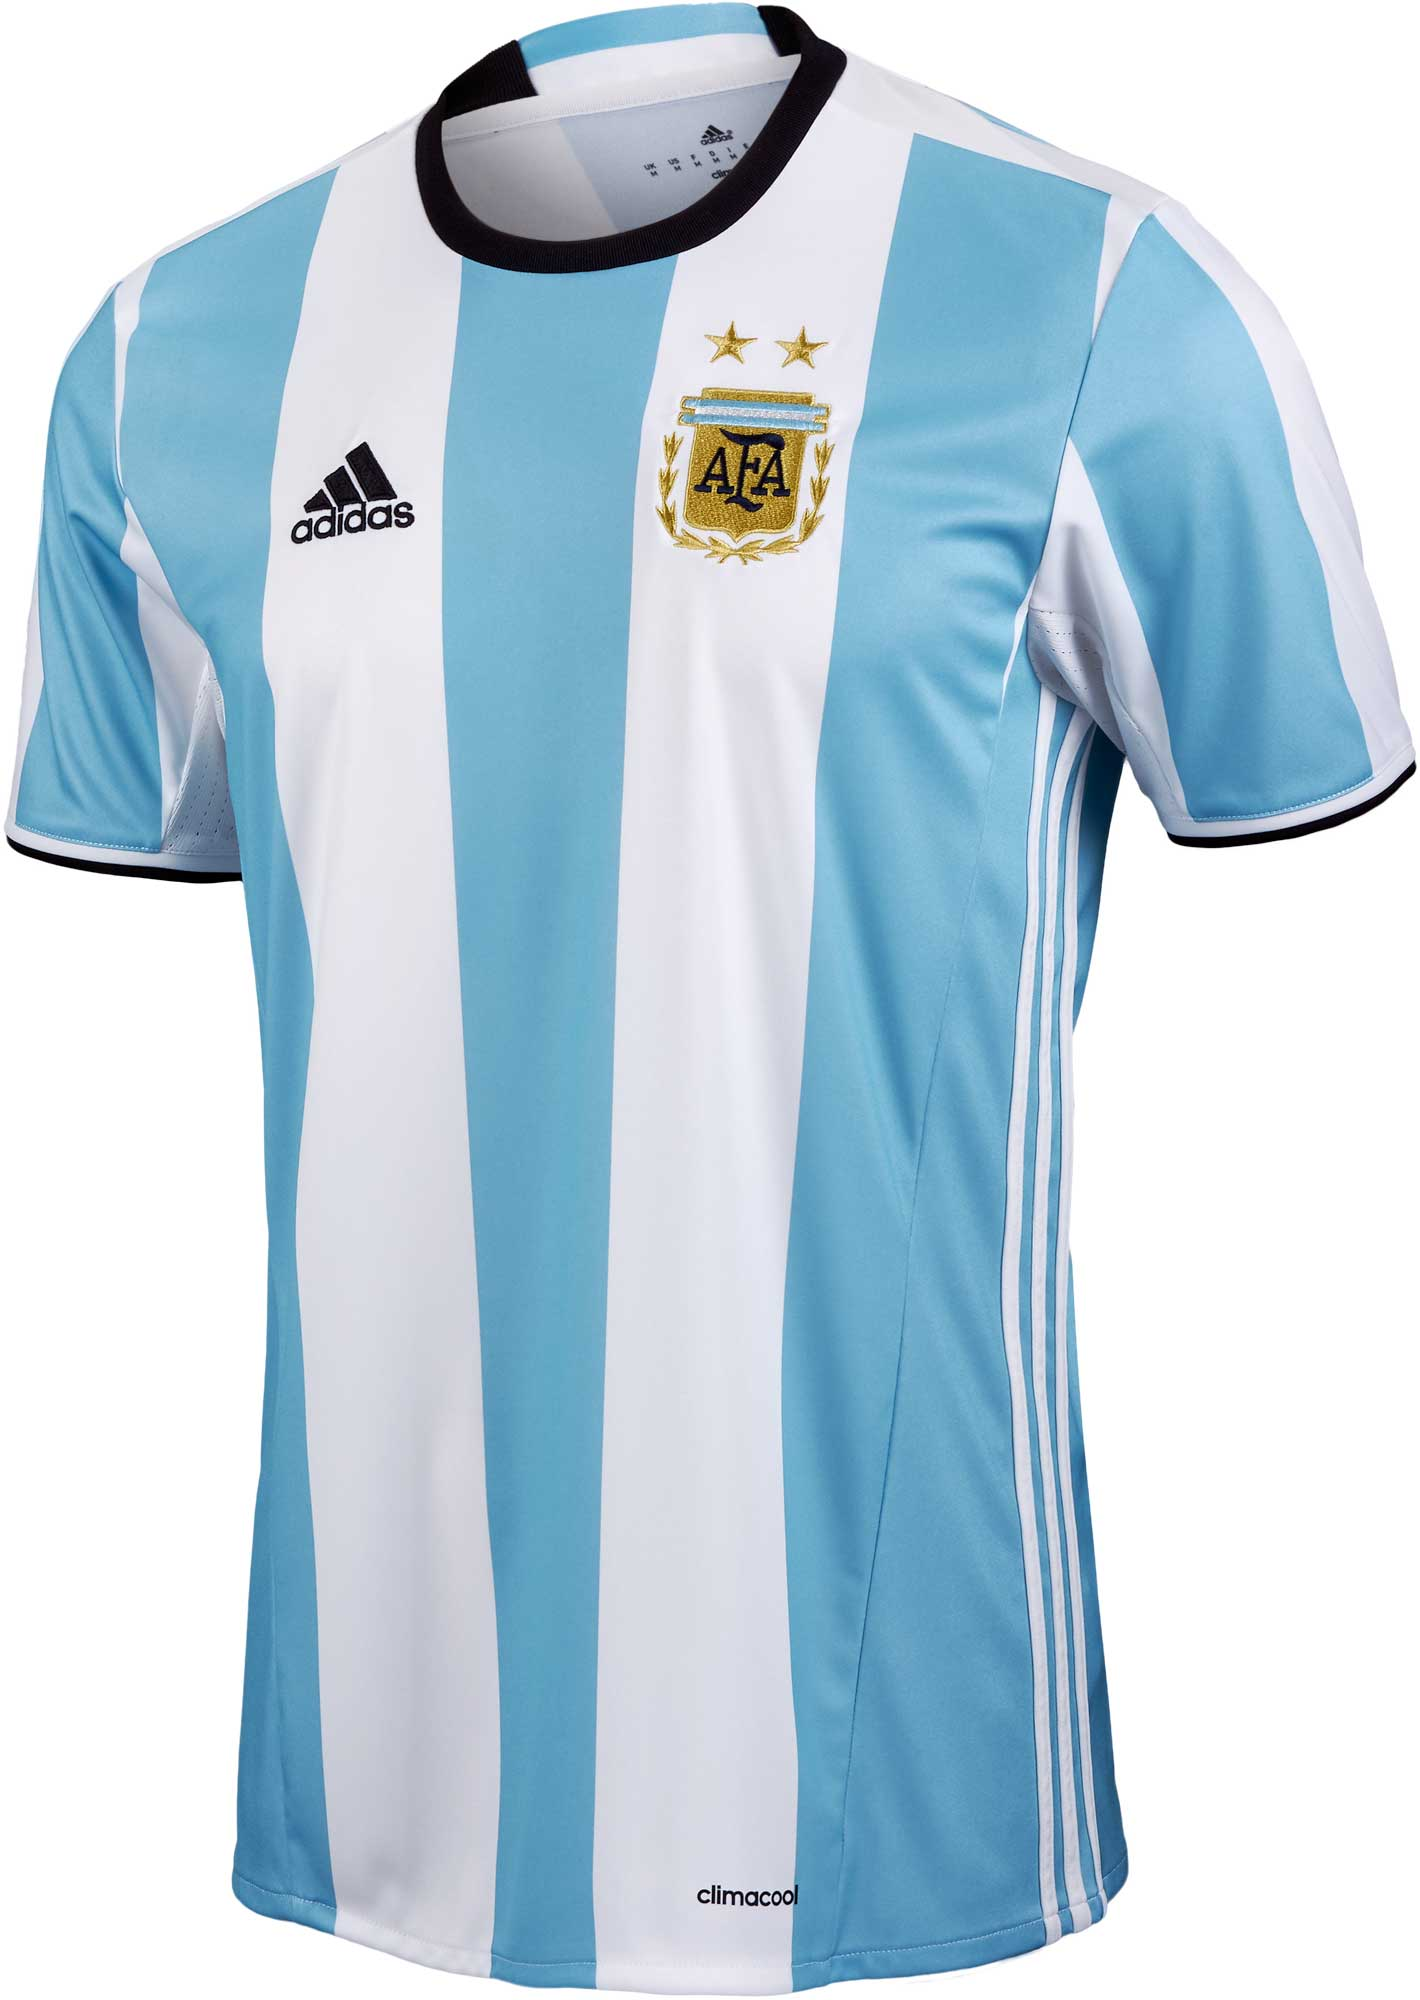 035017ebedf7 Buy cheap adidas argentina  Up to OFF79% DiscountDiscounts